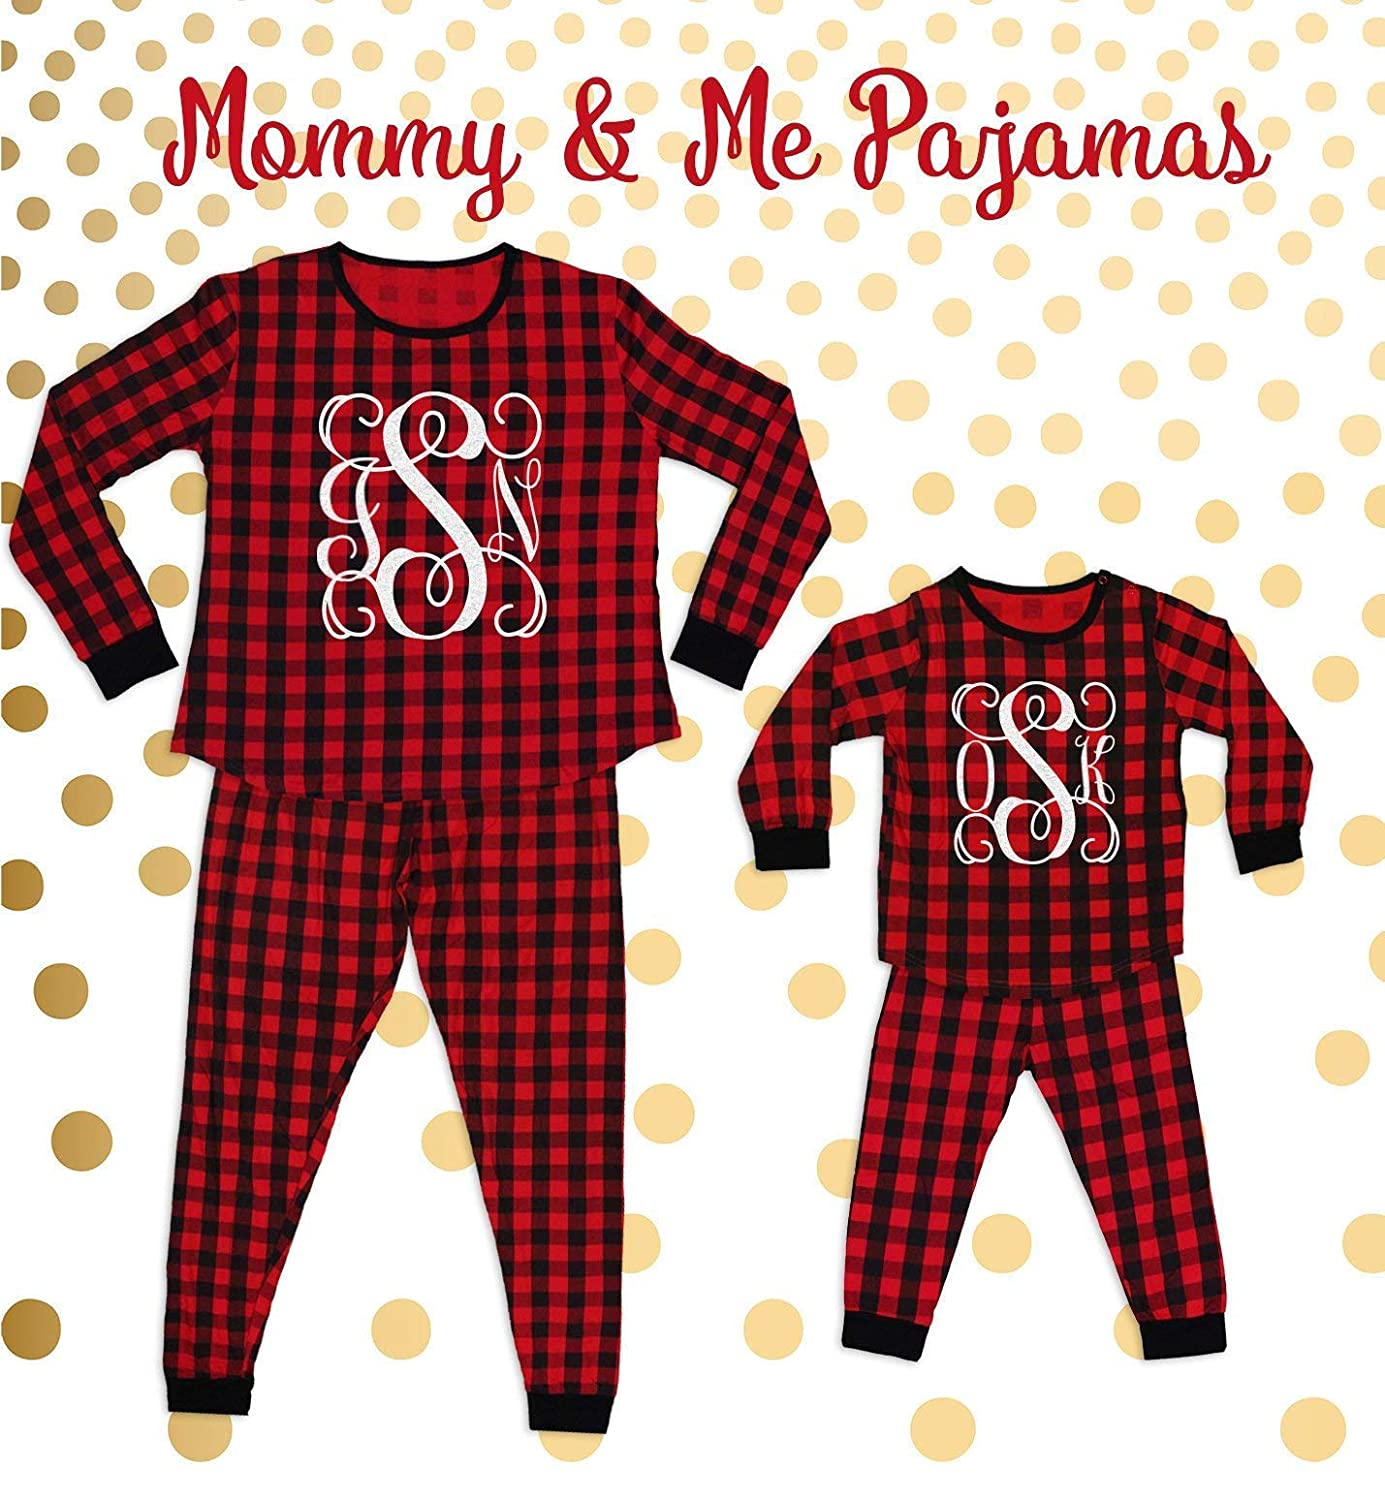 Mommy and Me Christmas Pajamas Christmas Pajamas Buffalo Plaid Pajamas Monogram Pajamas Mother Daughter Pajamas Mother Son Pajamas Christmas